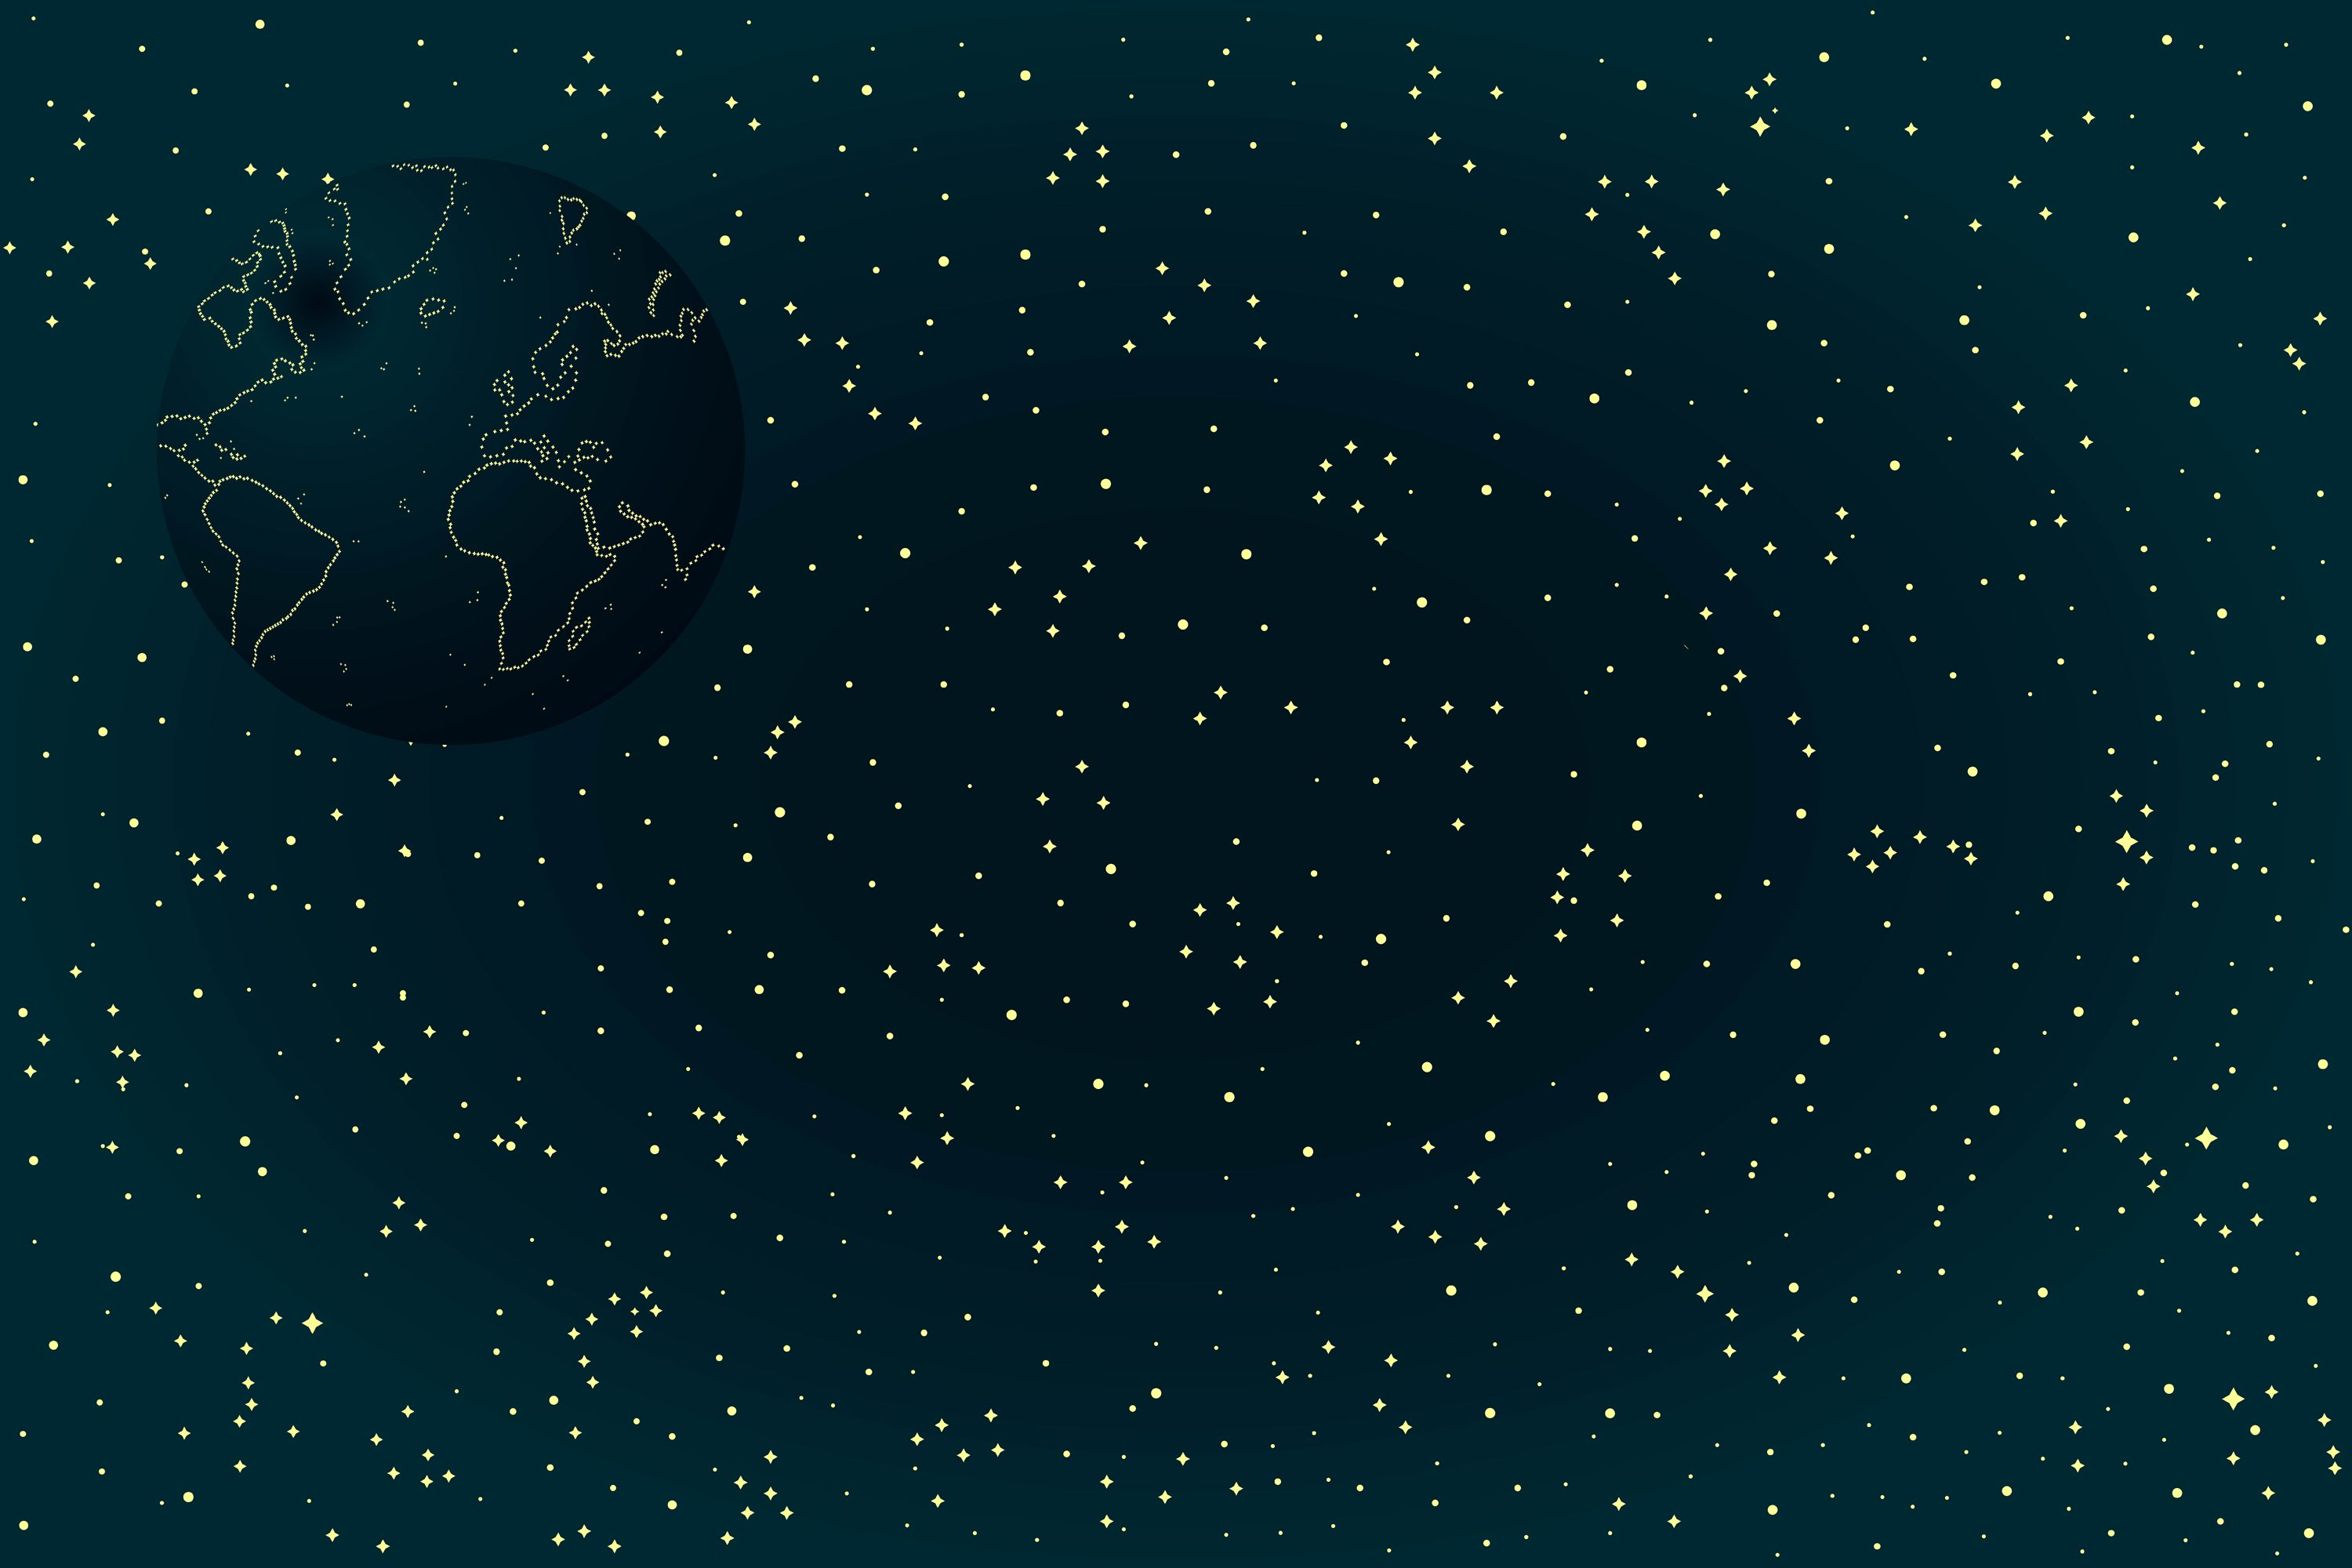 Sky Map of Hemisphere  Constellations on Night Dark Background | Sky